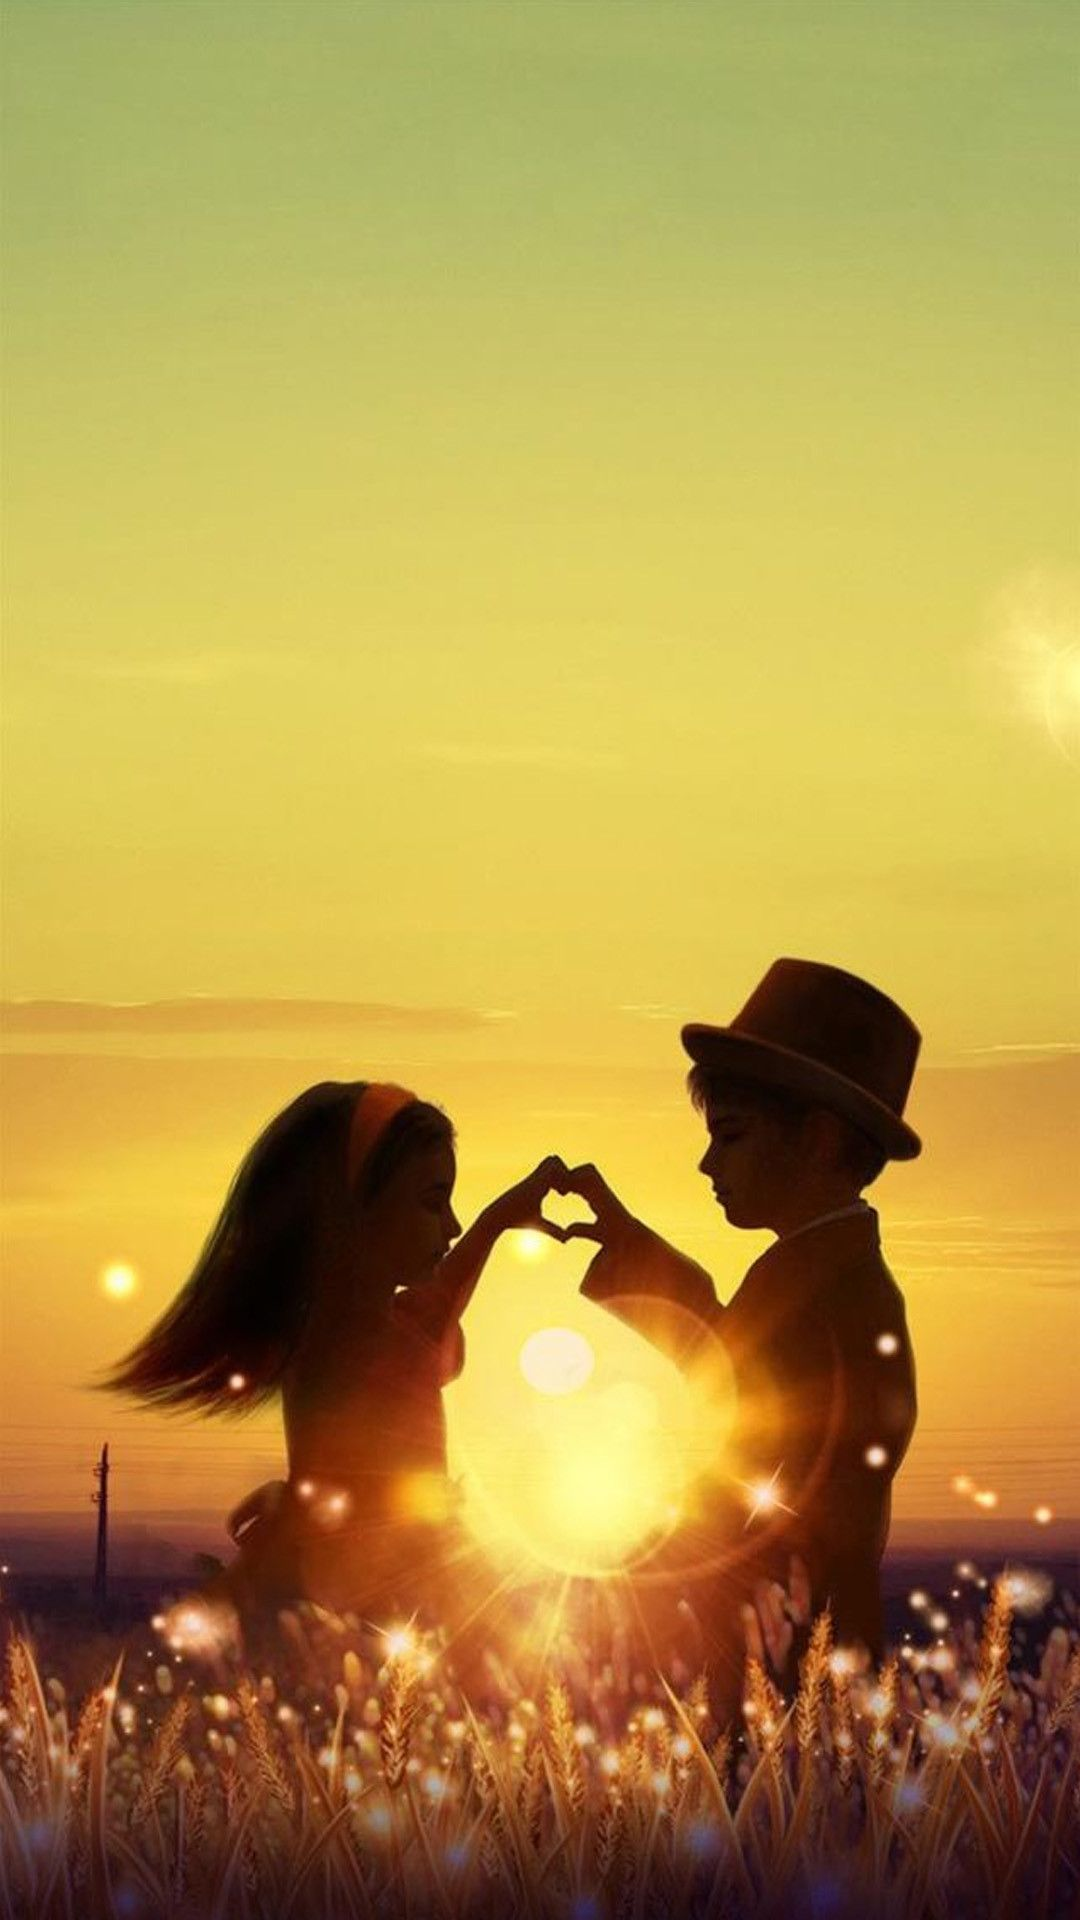 Android Wallpaper Gallery Hd Love Couple Wallpaper Cute Love Wallpapers Cute Couple Wallpaper